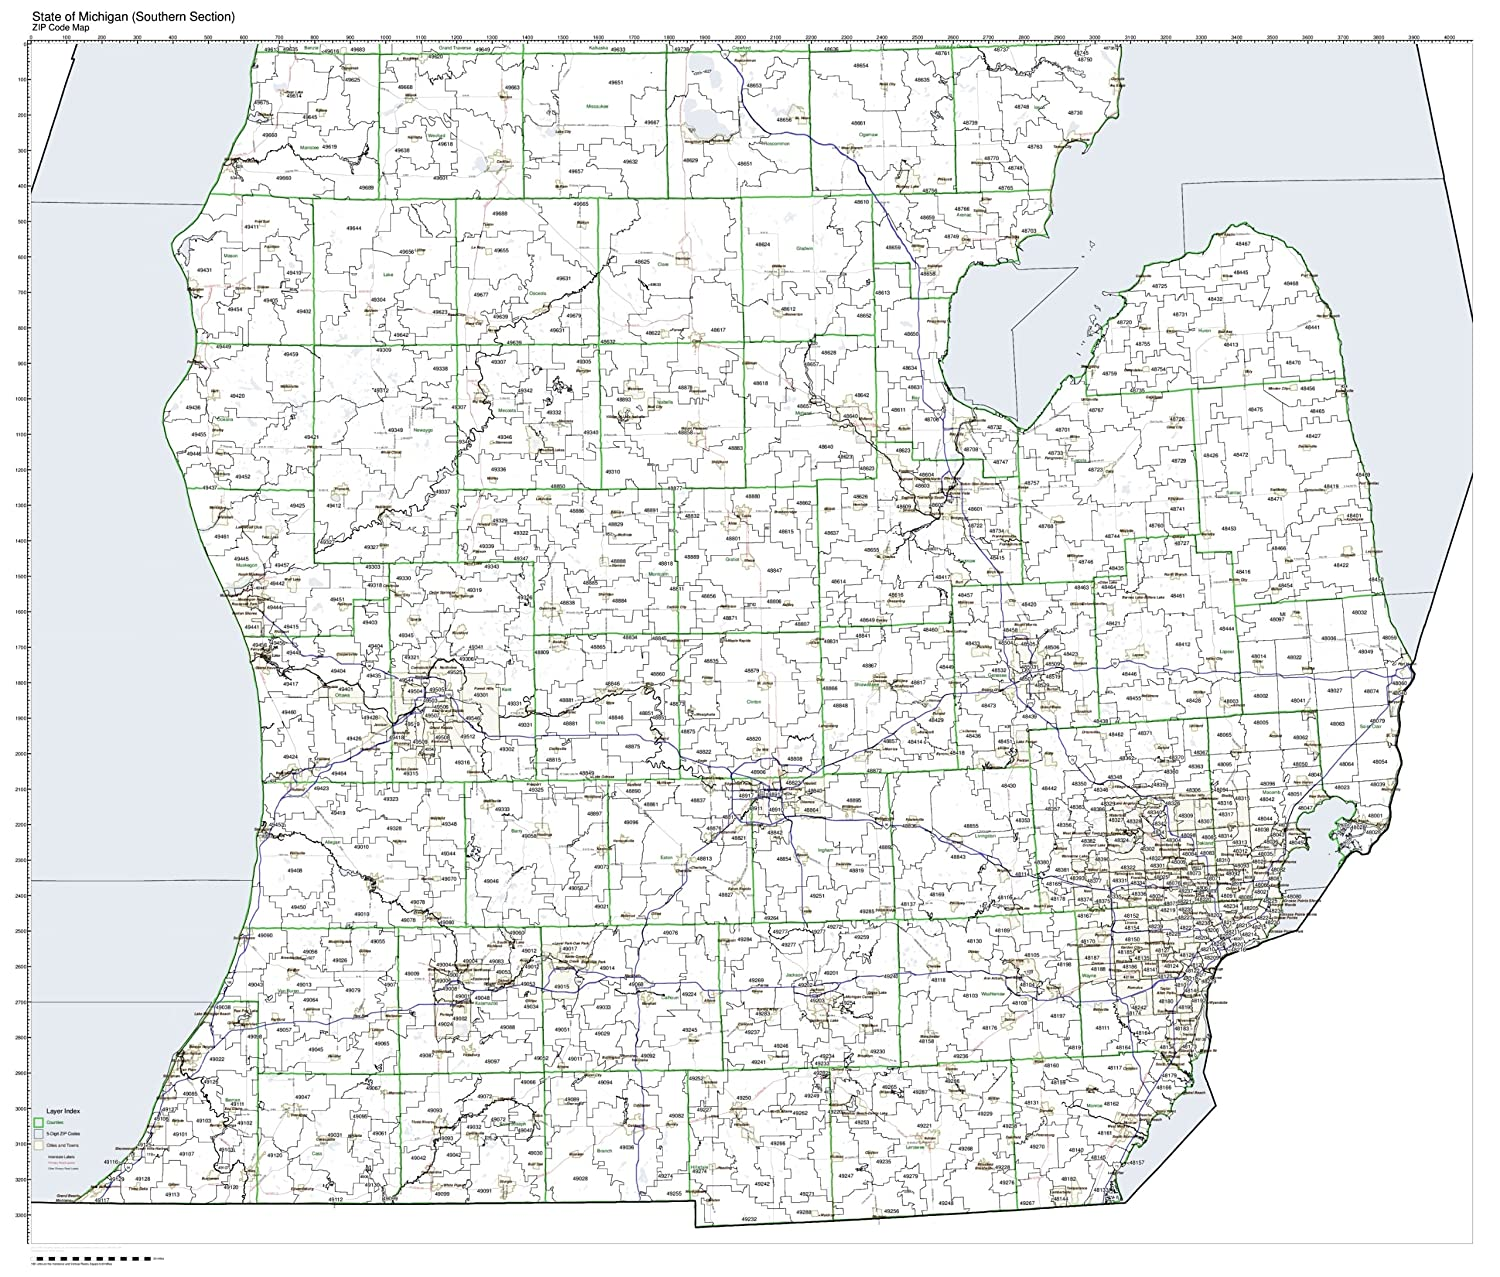 Michigan Map Of State.Amazon Com Zip Code Map State Of Michigan Southern Half Laminated